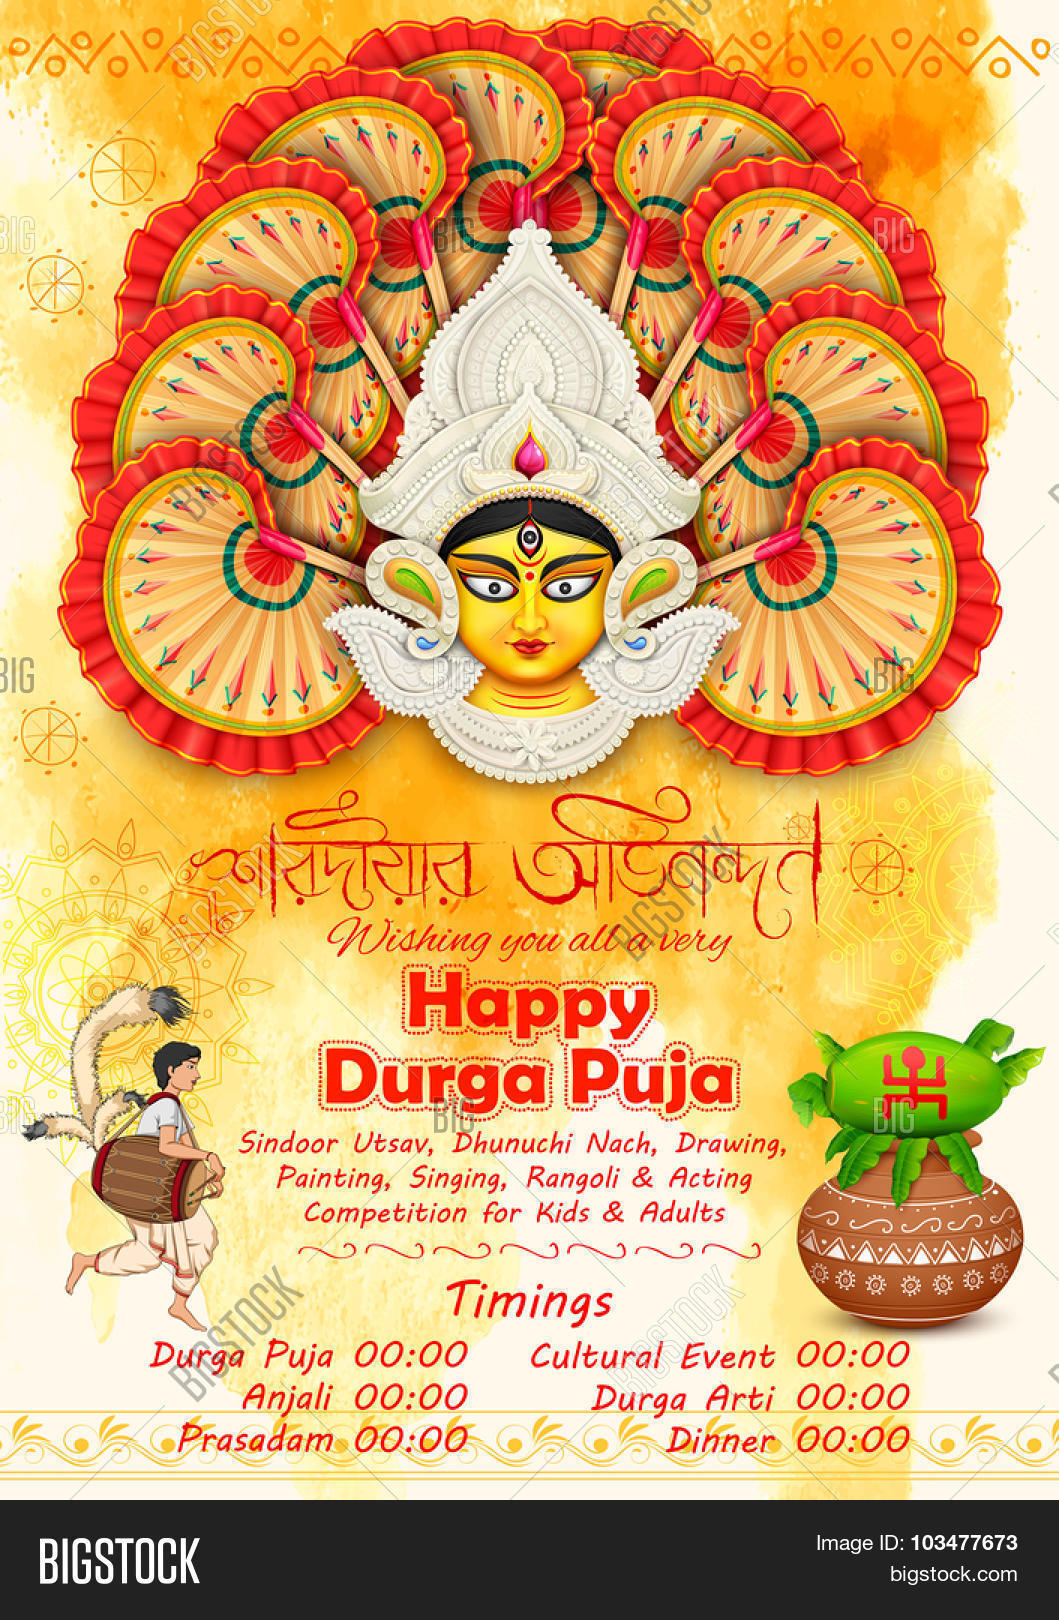 Illustration happy vector photo free trial bigstock illustration of happy durga puja background with bengali text meaning autumn greetings m4hsunfo